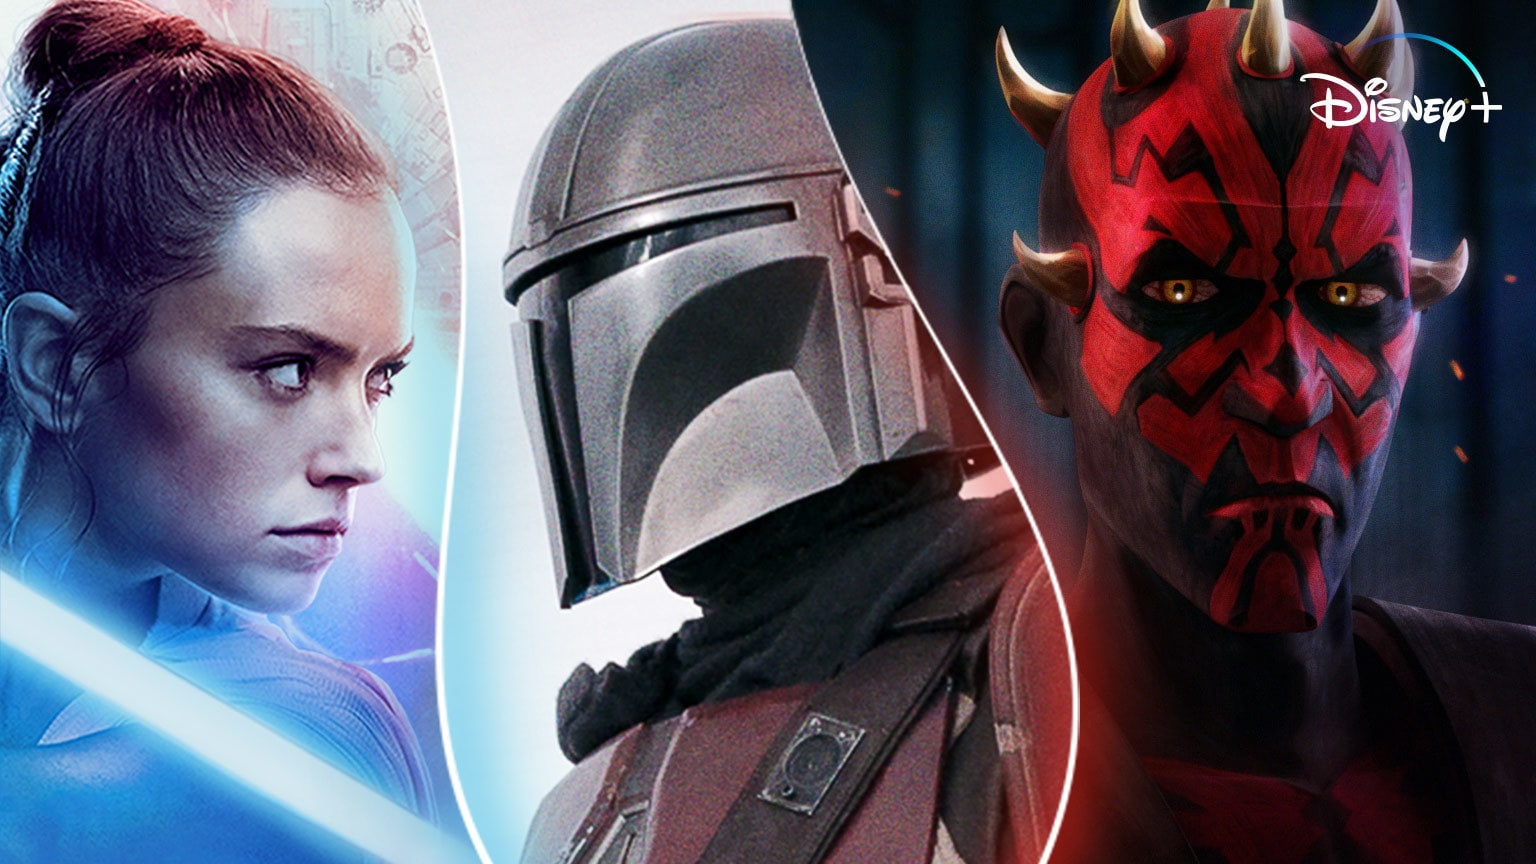 Celebrate Star Wars Day with Disney+